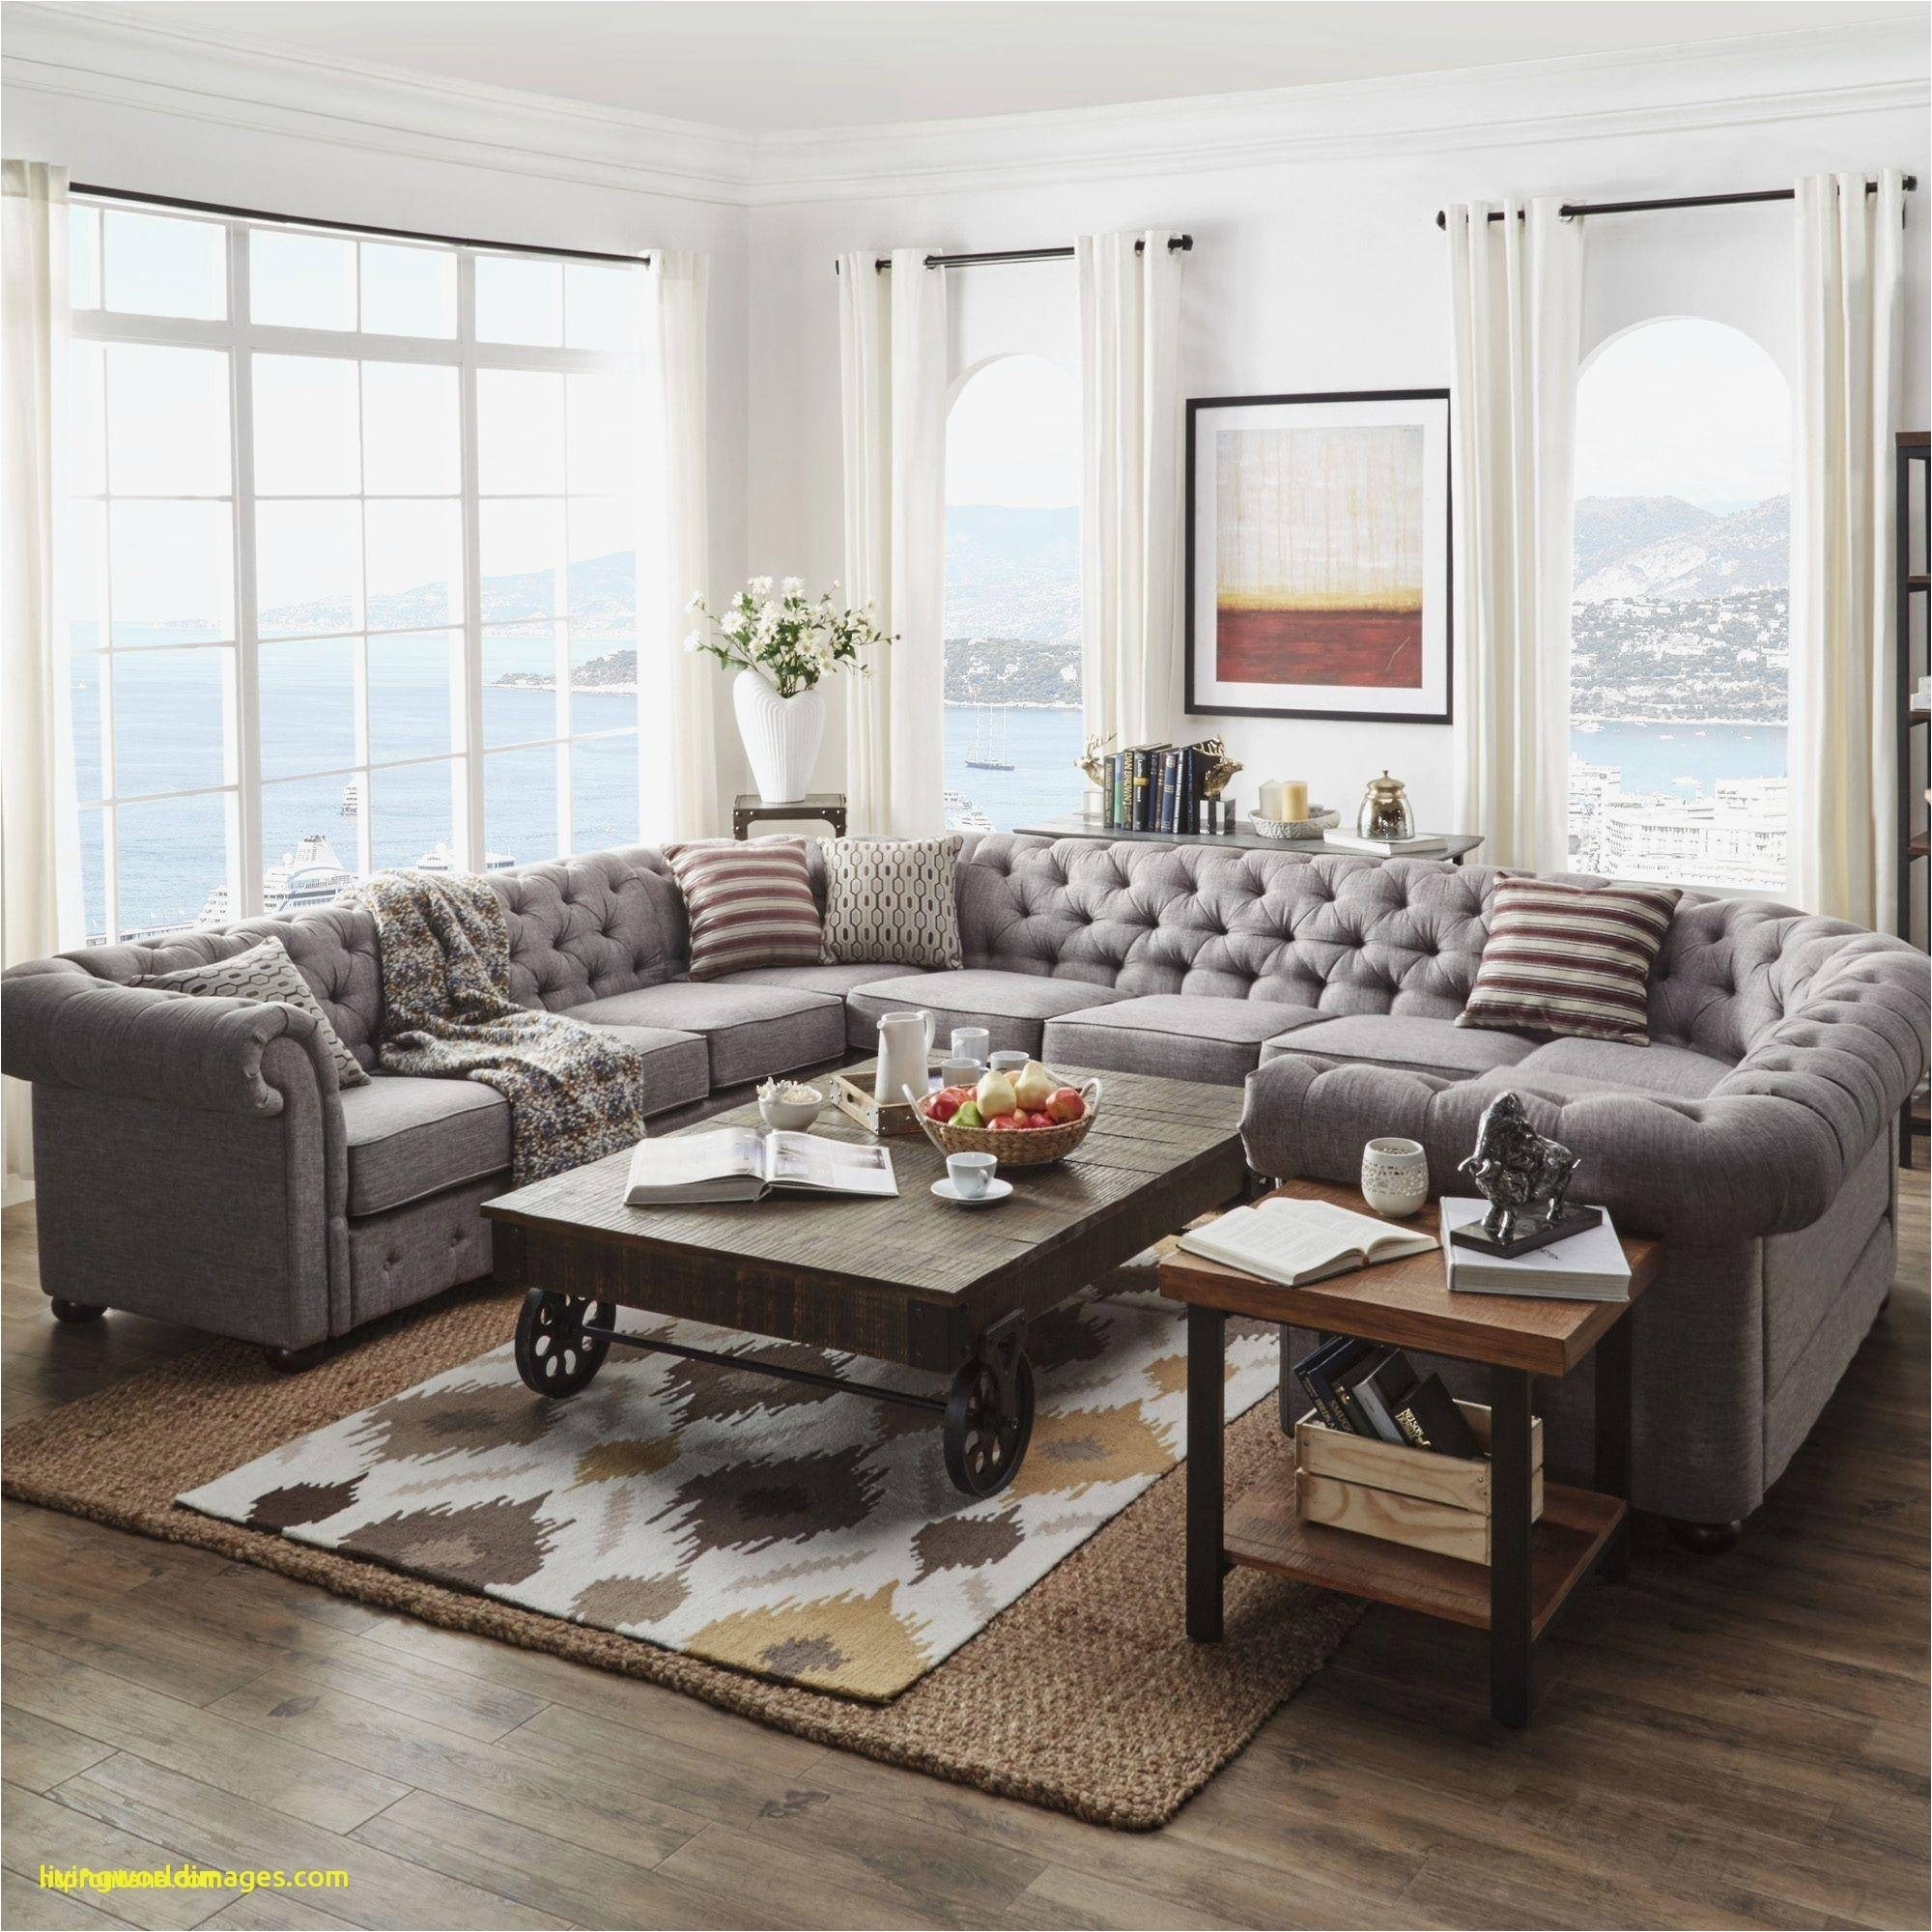 Living Room 44 Grey White Living Room Classy Living Room Traditional Decorating Ideas Awesome Shaker